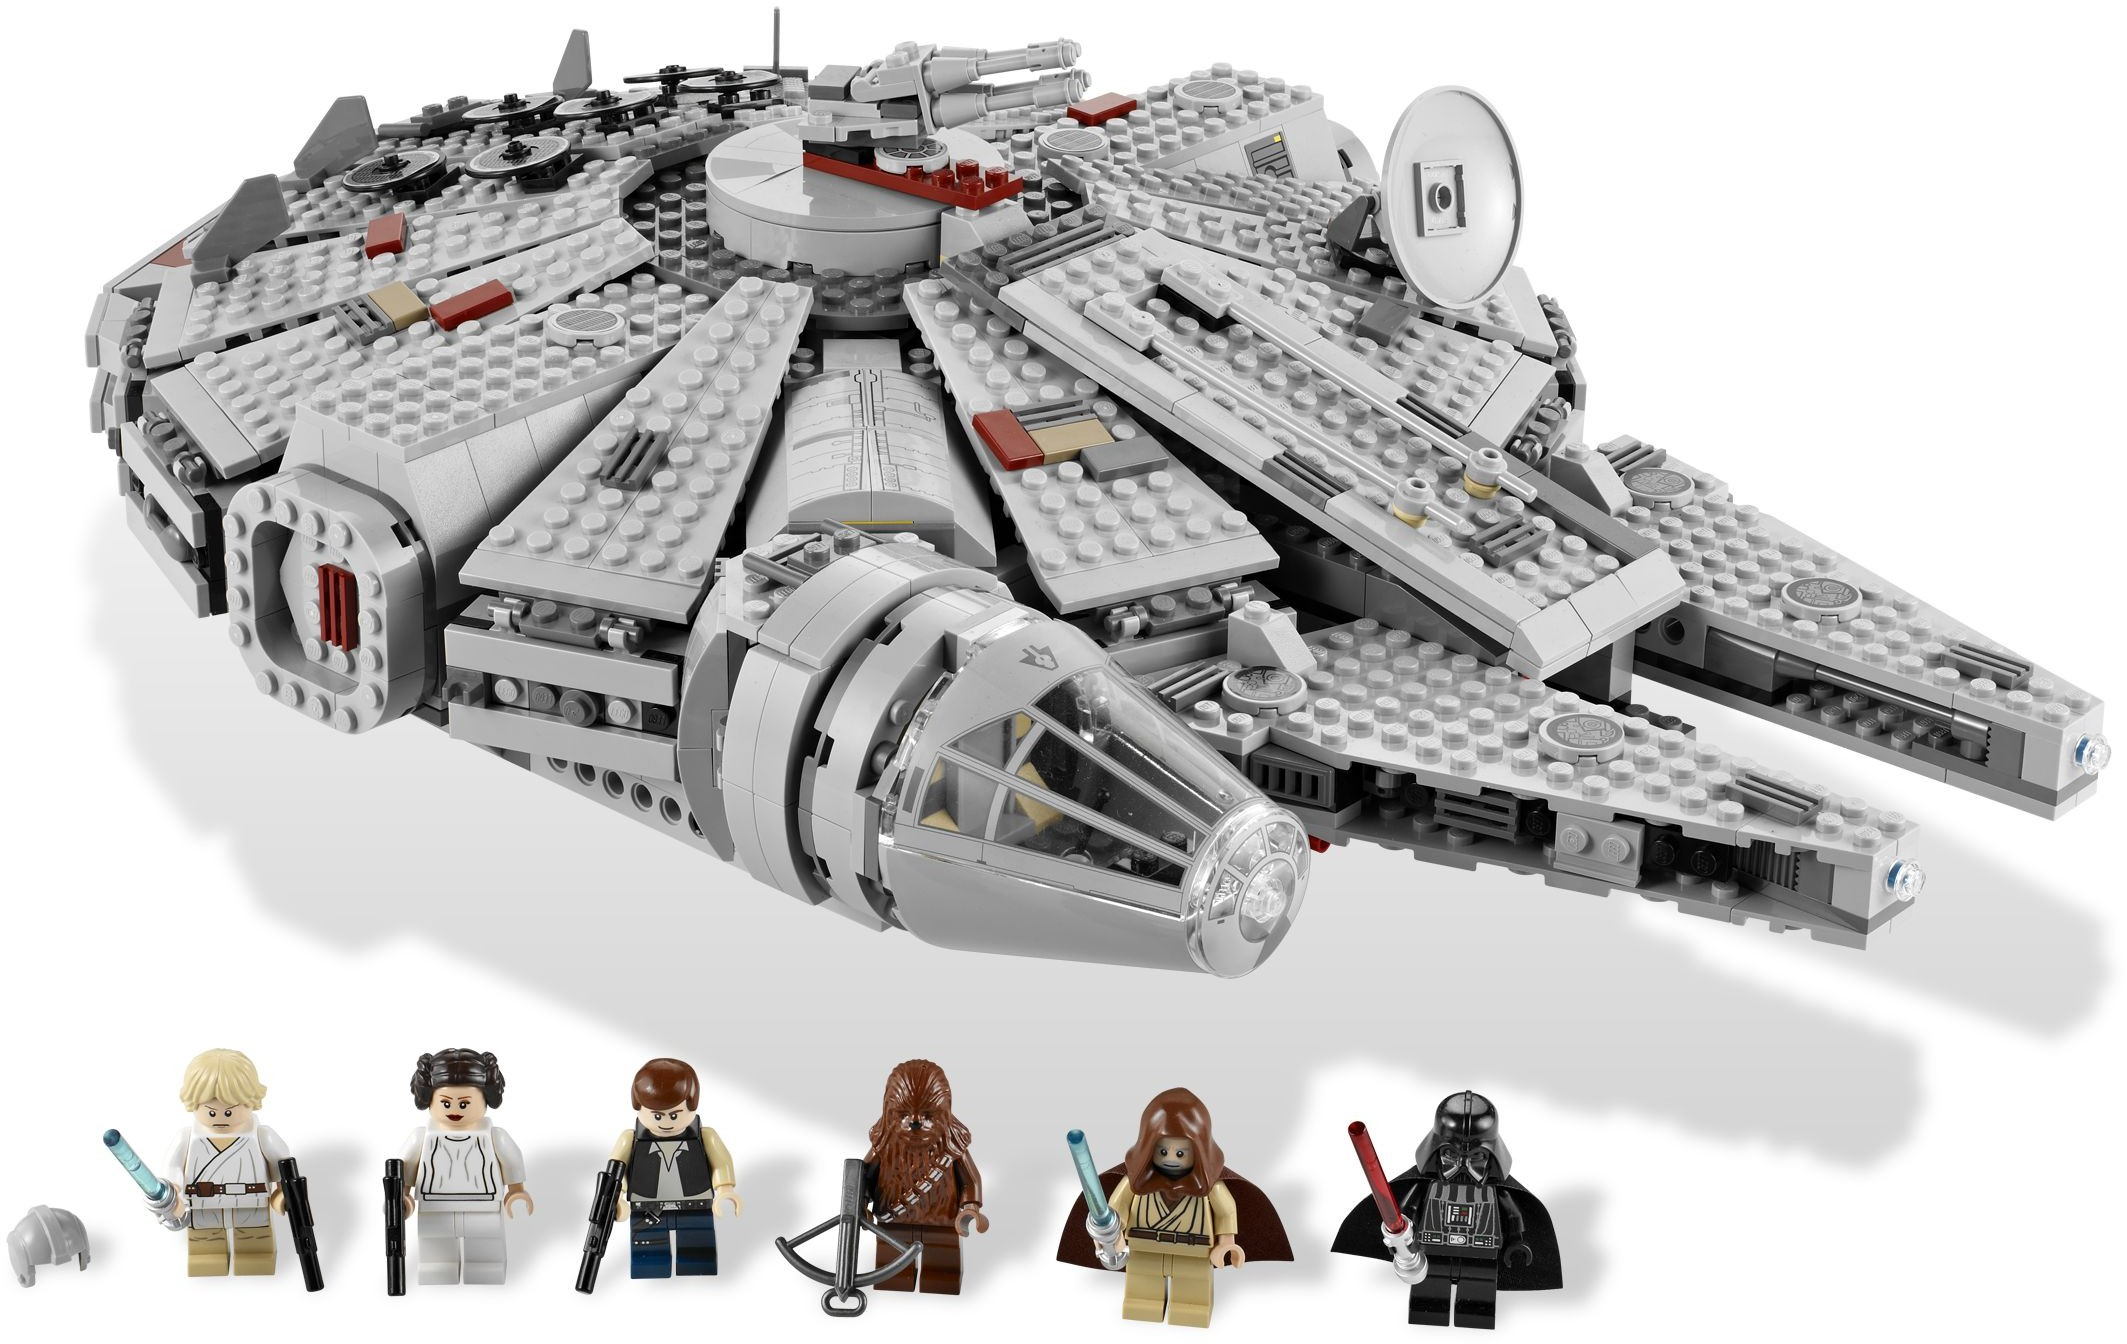 Tagged Chewbacca Brickset LEGO Set Guide And Database - 25 2 lego star wars minifigures han solo han in carbonite blaster